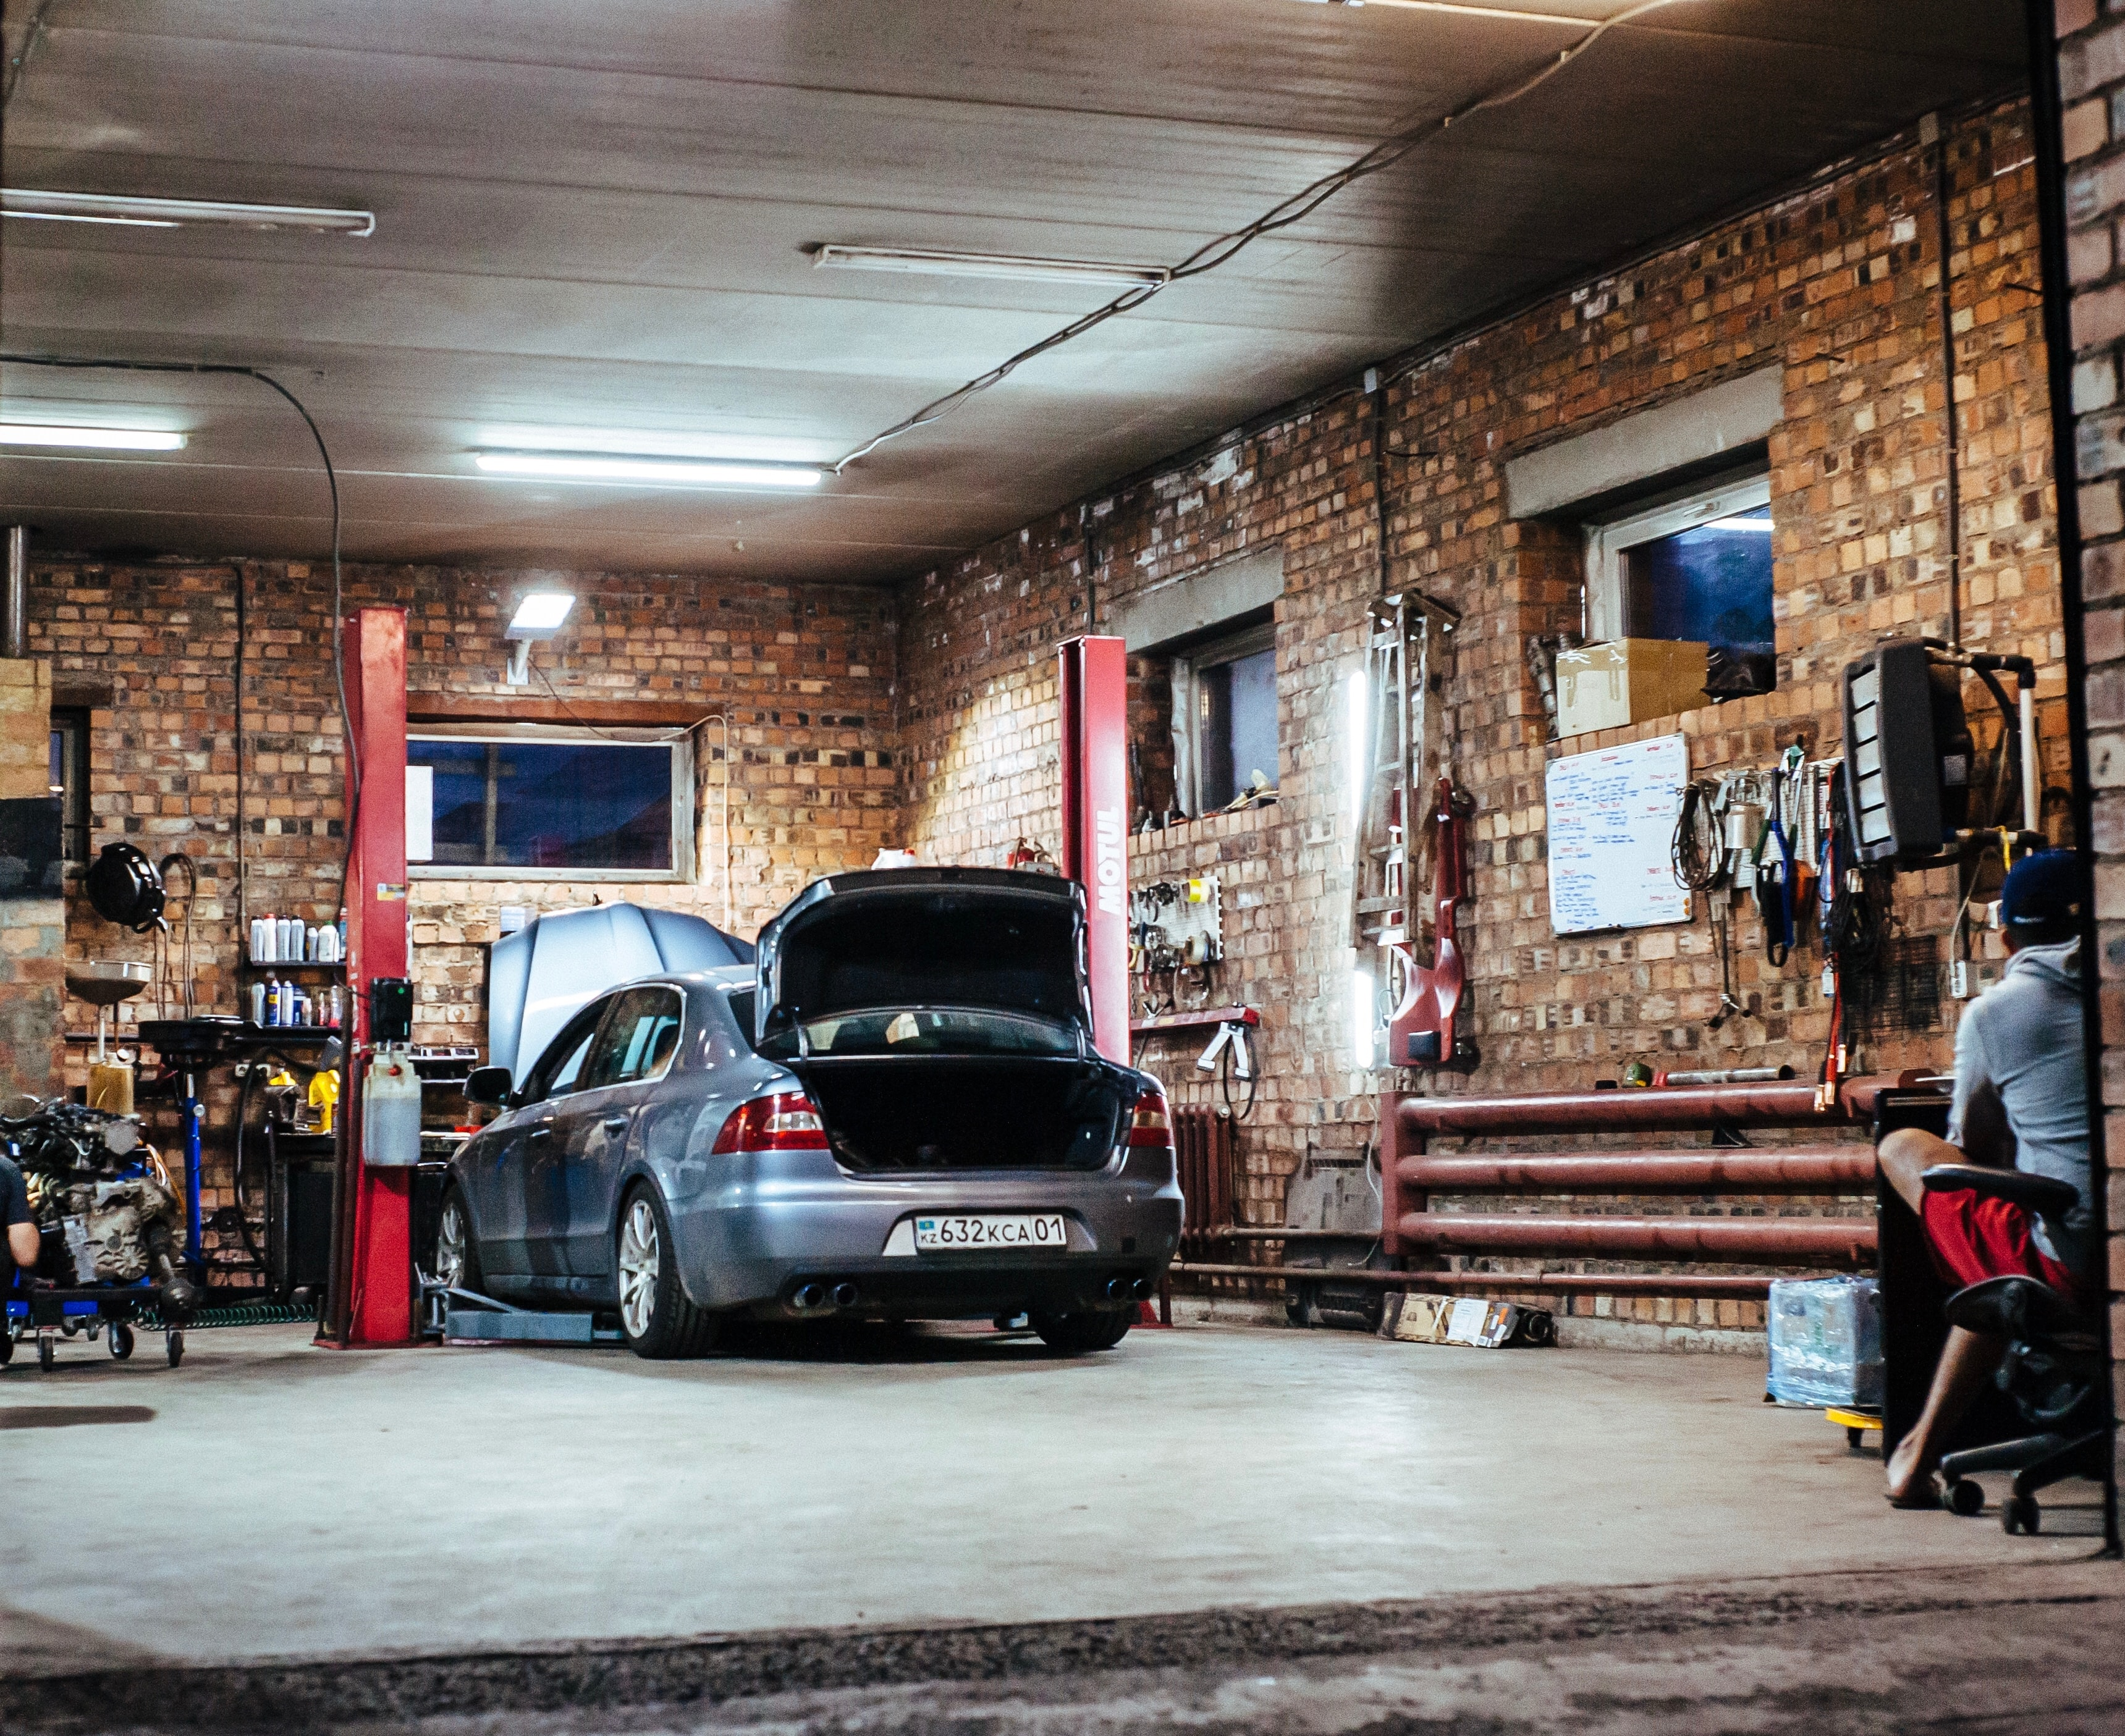 Where Can You Find a Reliable Paintless Dent Repair Service in Denver, CO?